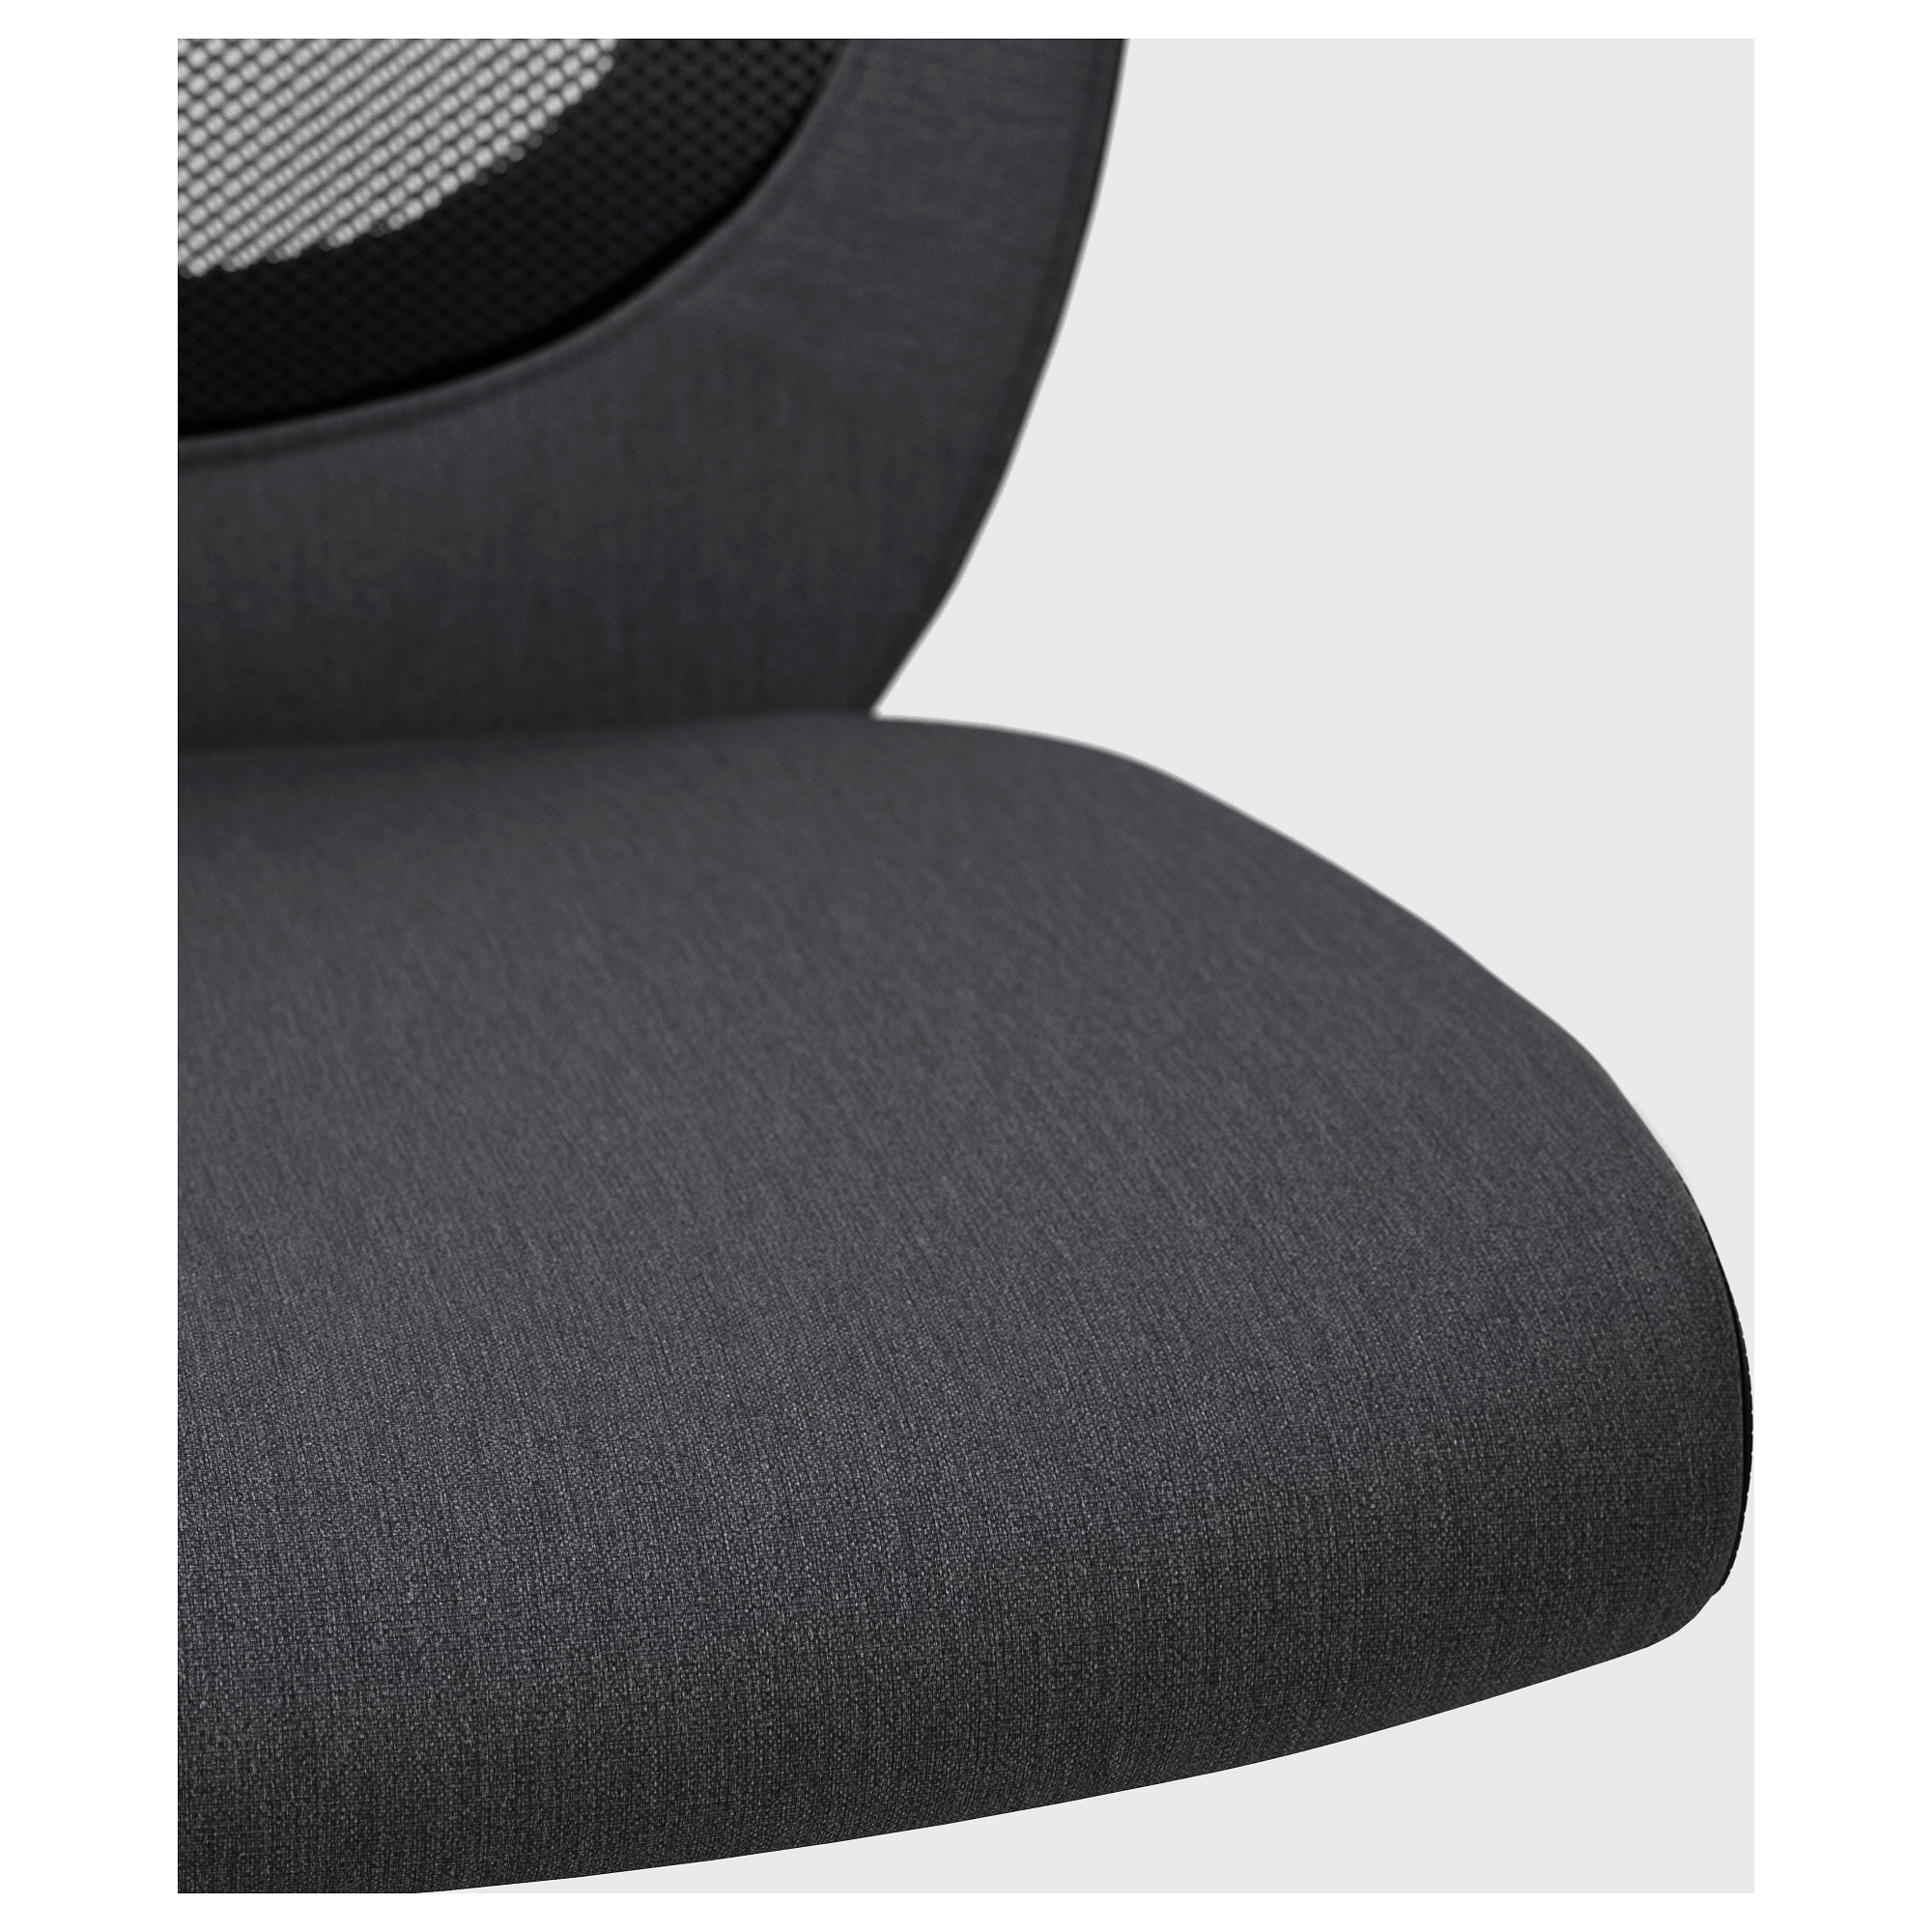 Flintan Swivel Chair Vissle Grey – Ikea Intended For Grey Swivel Chairs (View 11 of 25)